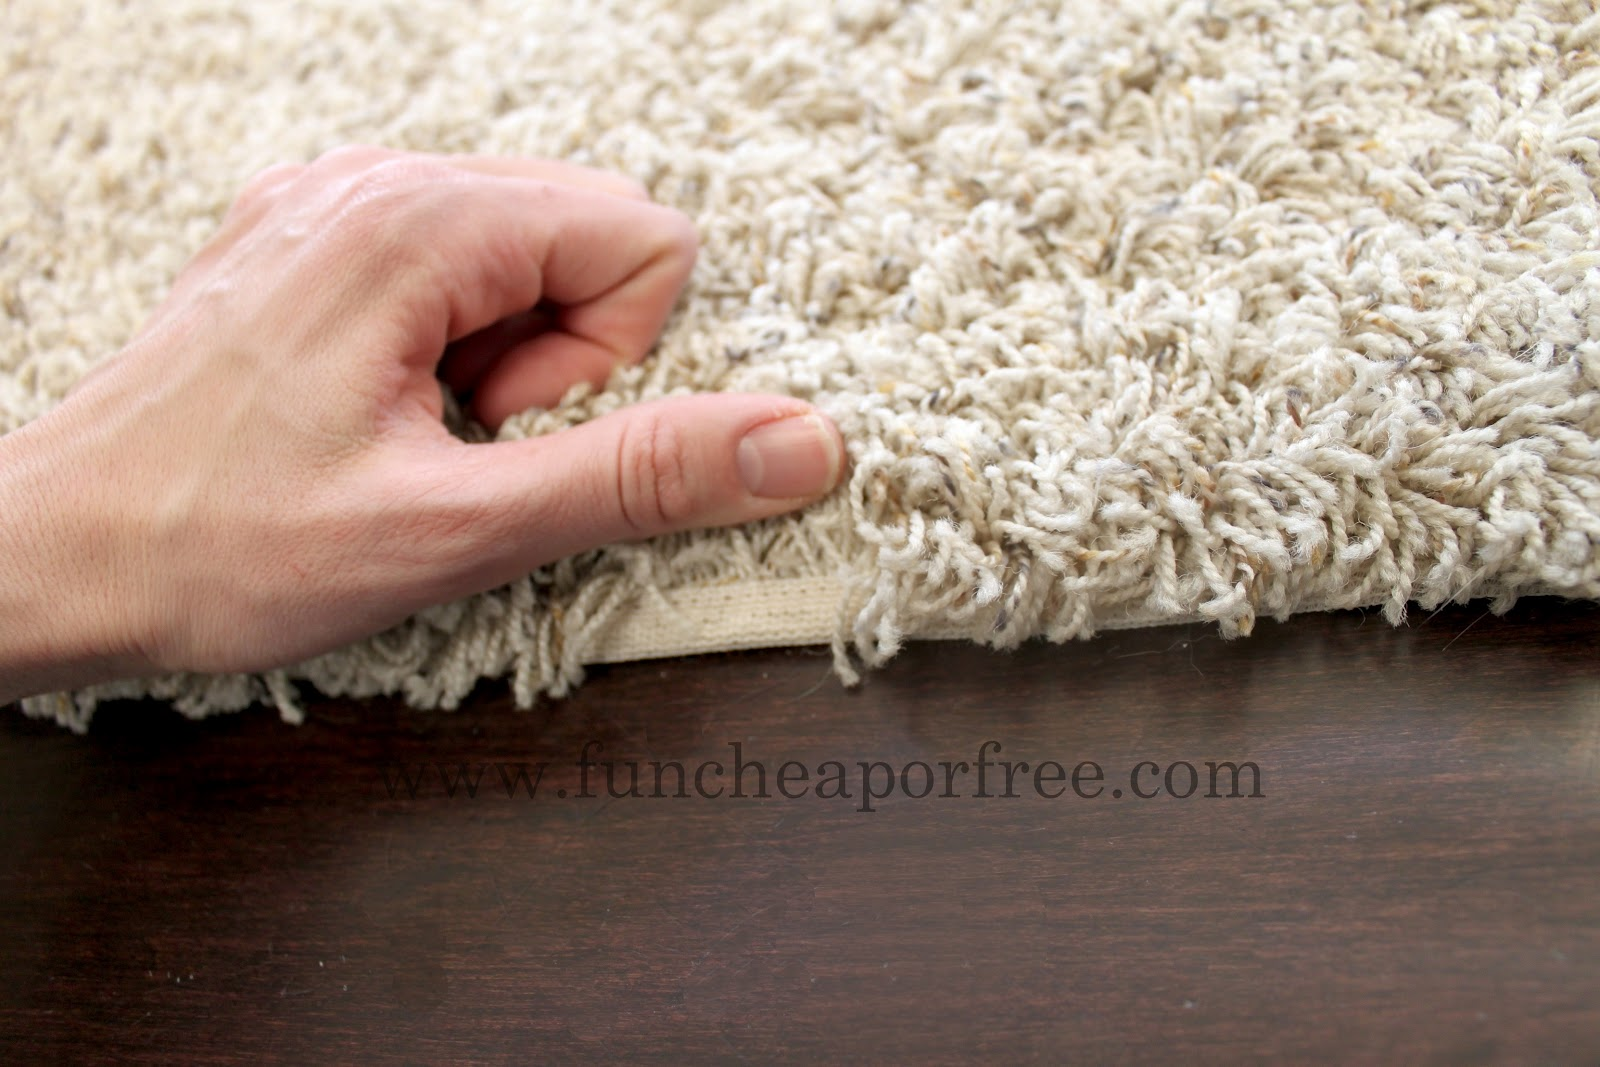 How to make an area rug out of remnant carpet - Fun Cheap ...